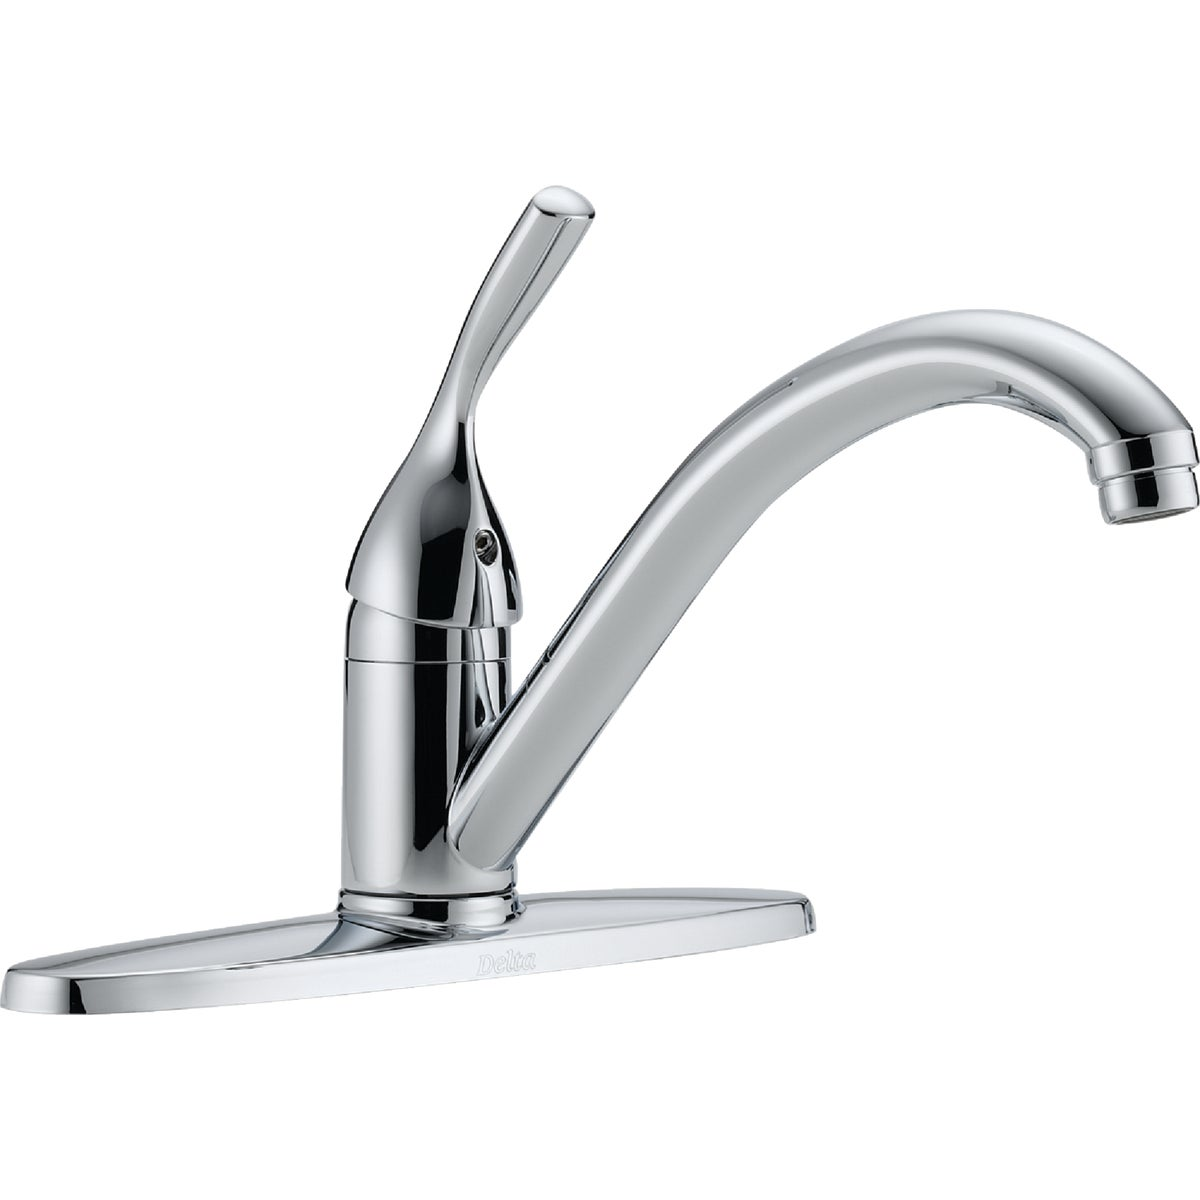 1H CHROME KITCHEN FAUCET - 100-DST by Delta Faucet Co